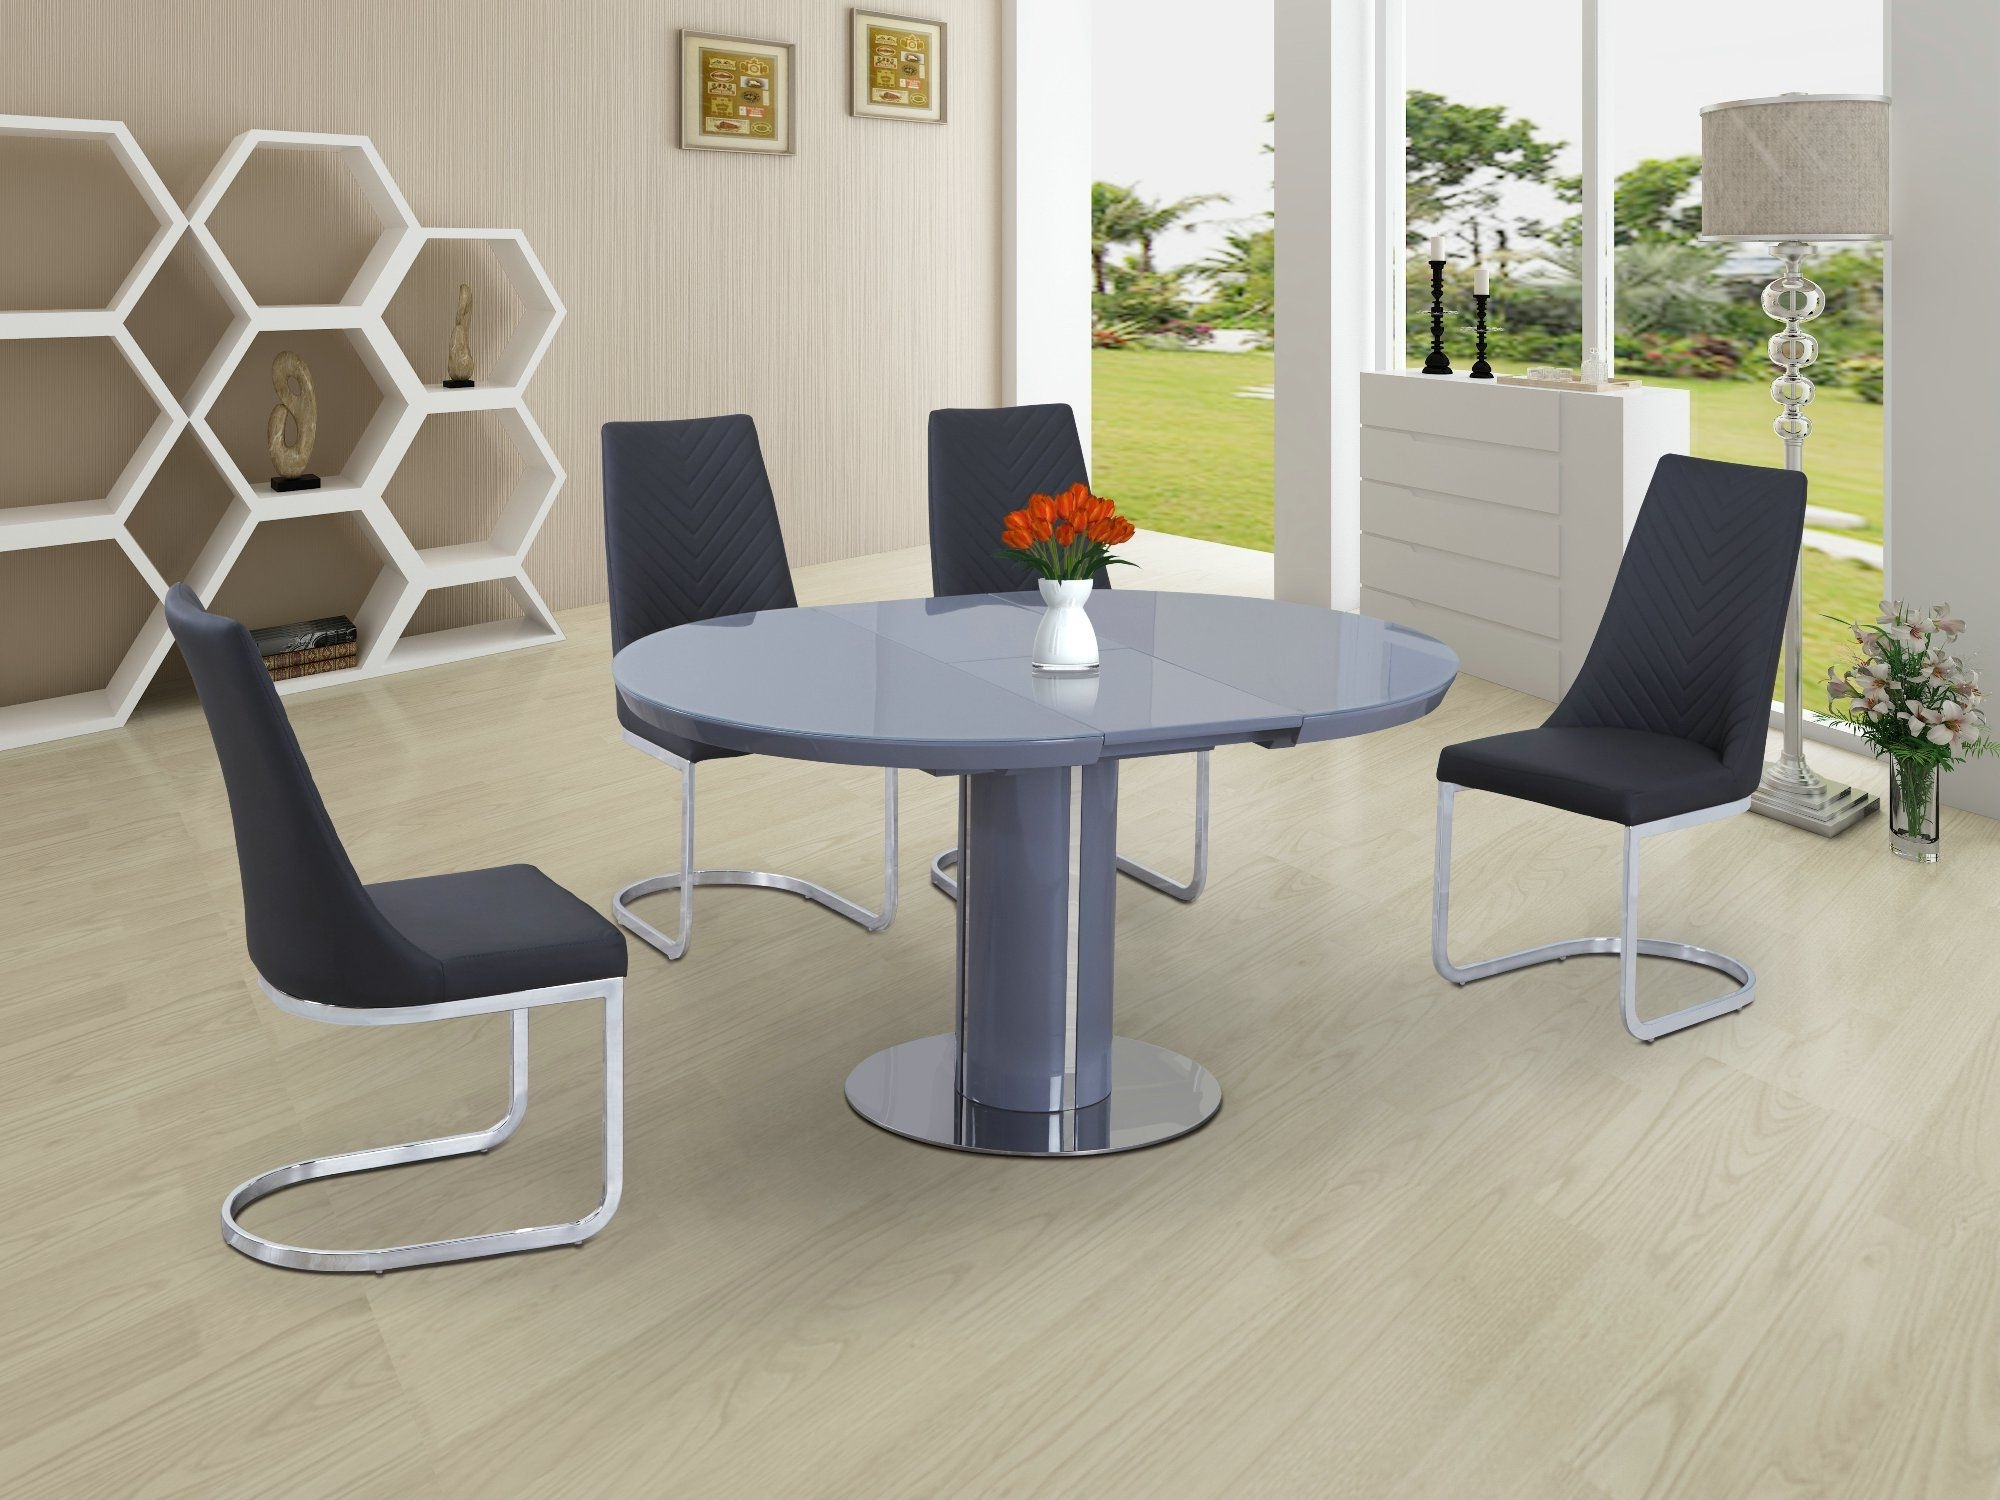 Eclipse Round / Oval Gloss & Glass Extending 110 To 145 Cm Dining Table - Grey in Most Recently Released Glass Extending Dining Tables